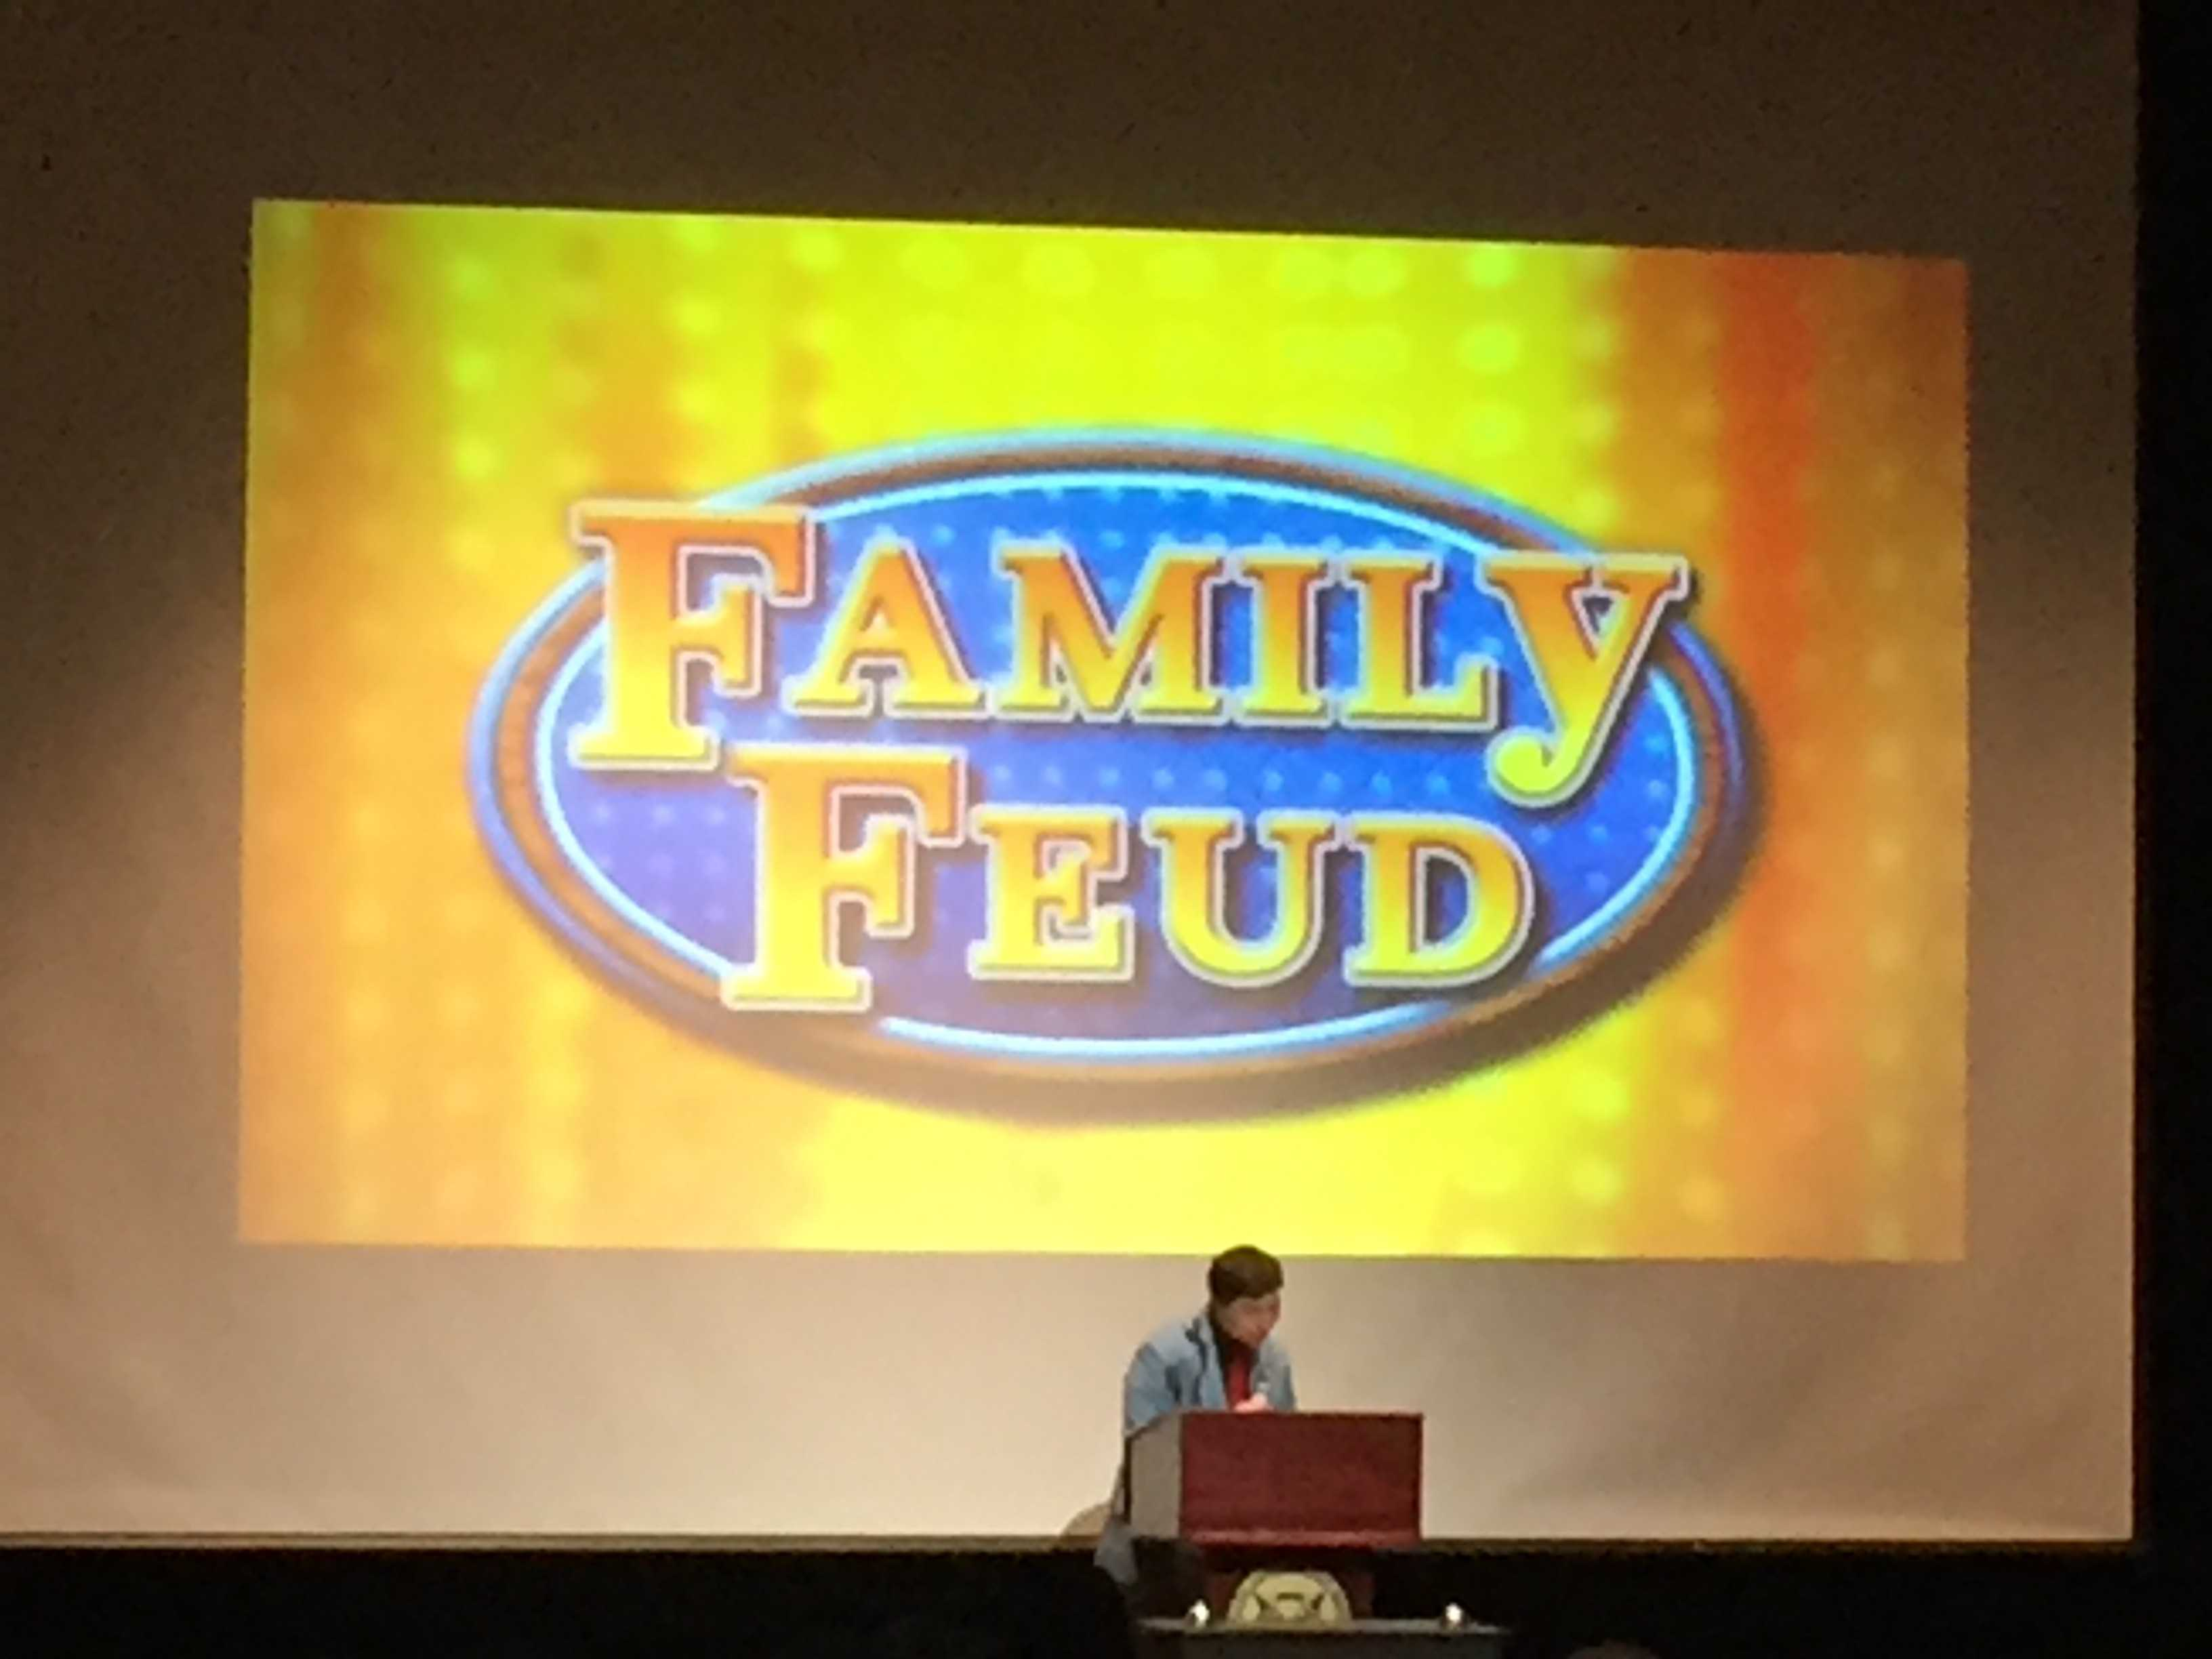 Family Feud creates competition, benefits charity